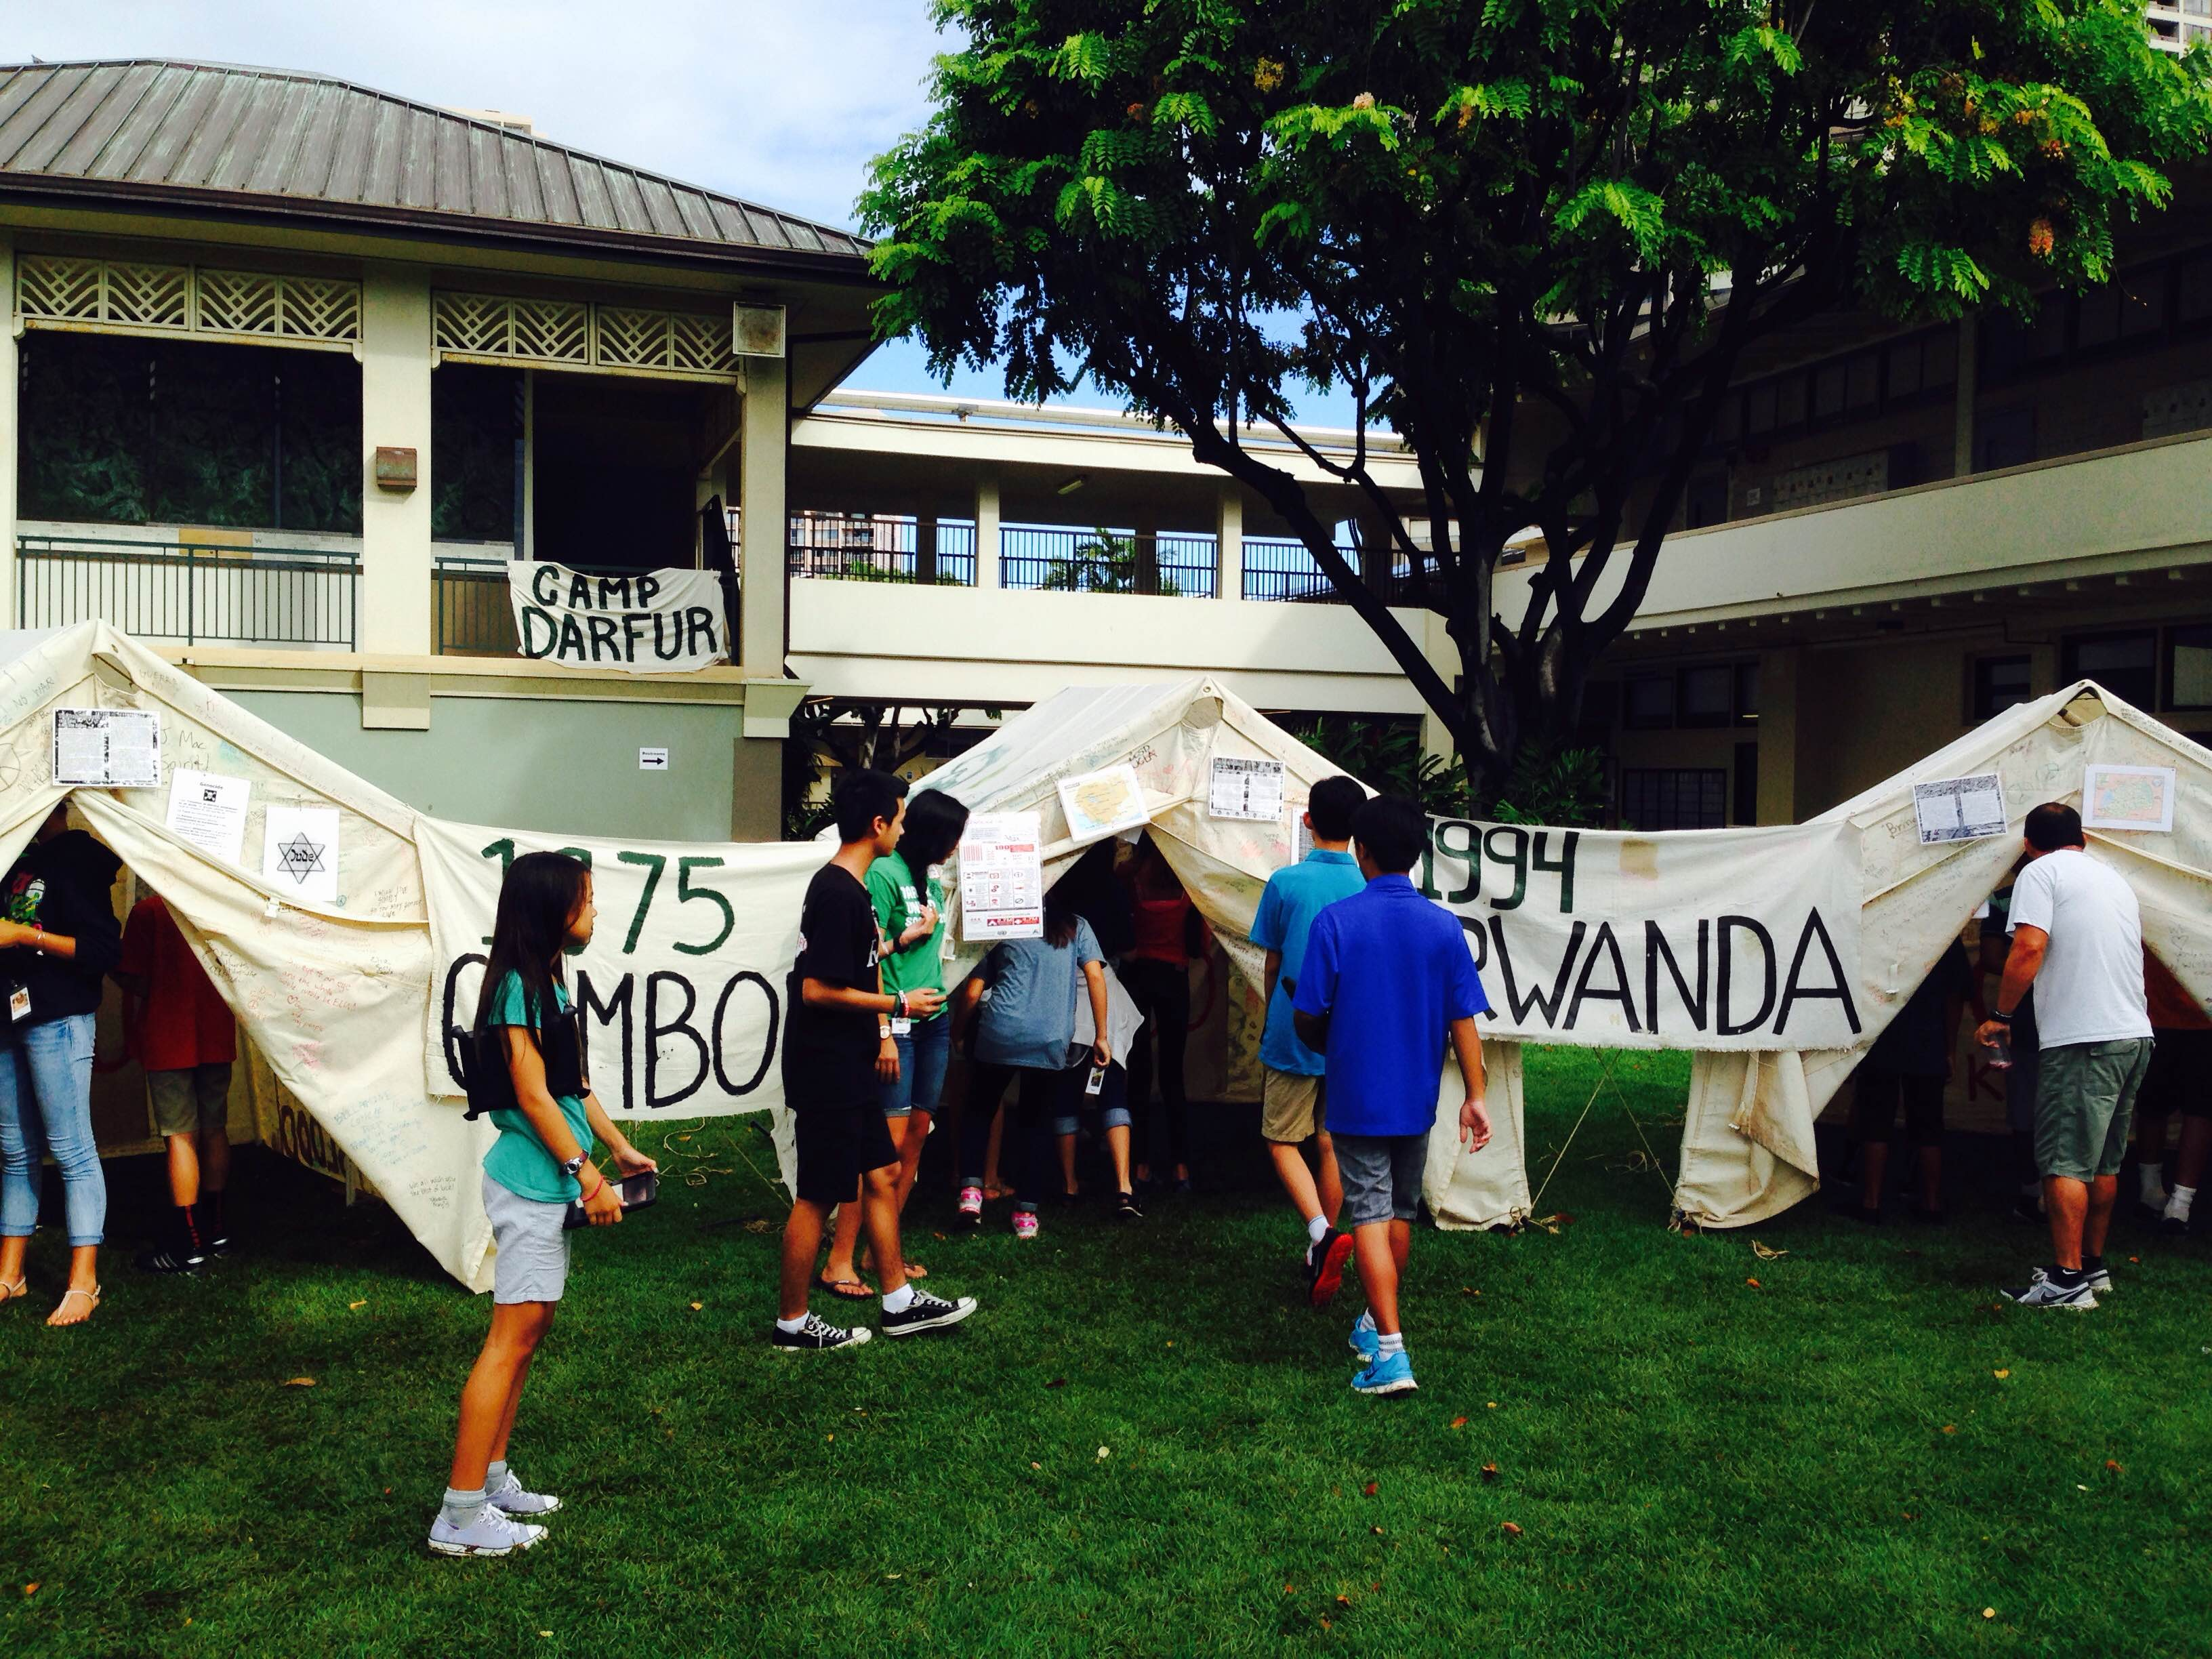 Movie Trailers That Spark Activism from 'Iolani School's 7th Graders